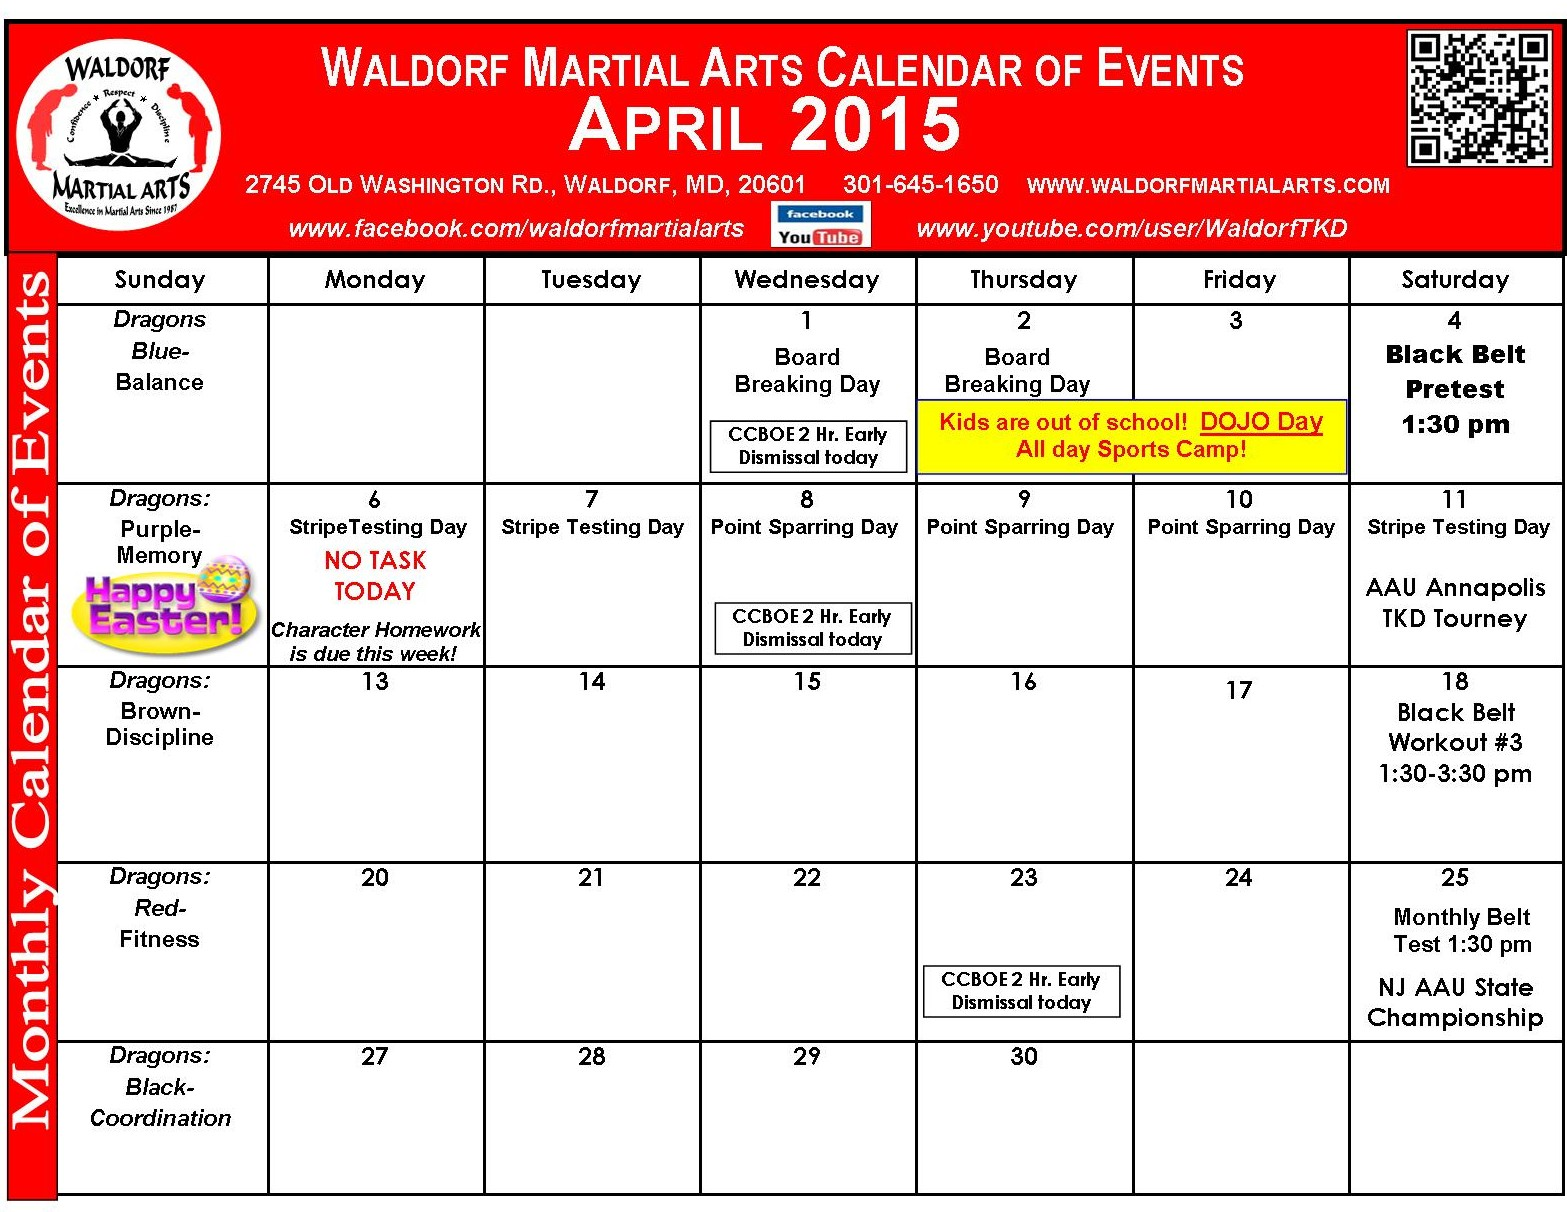 Calendar April Events : Waldorf martial arts april calendar of events